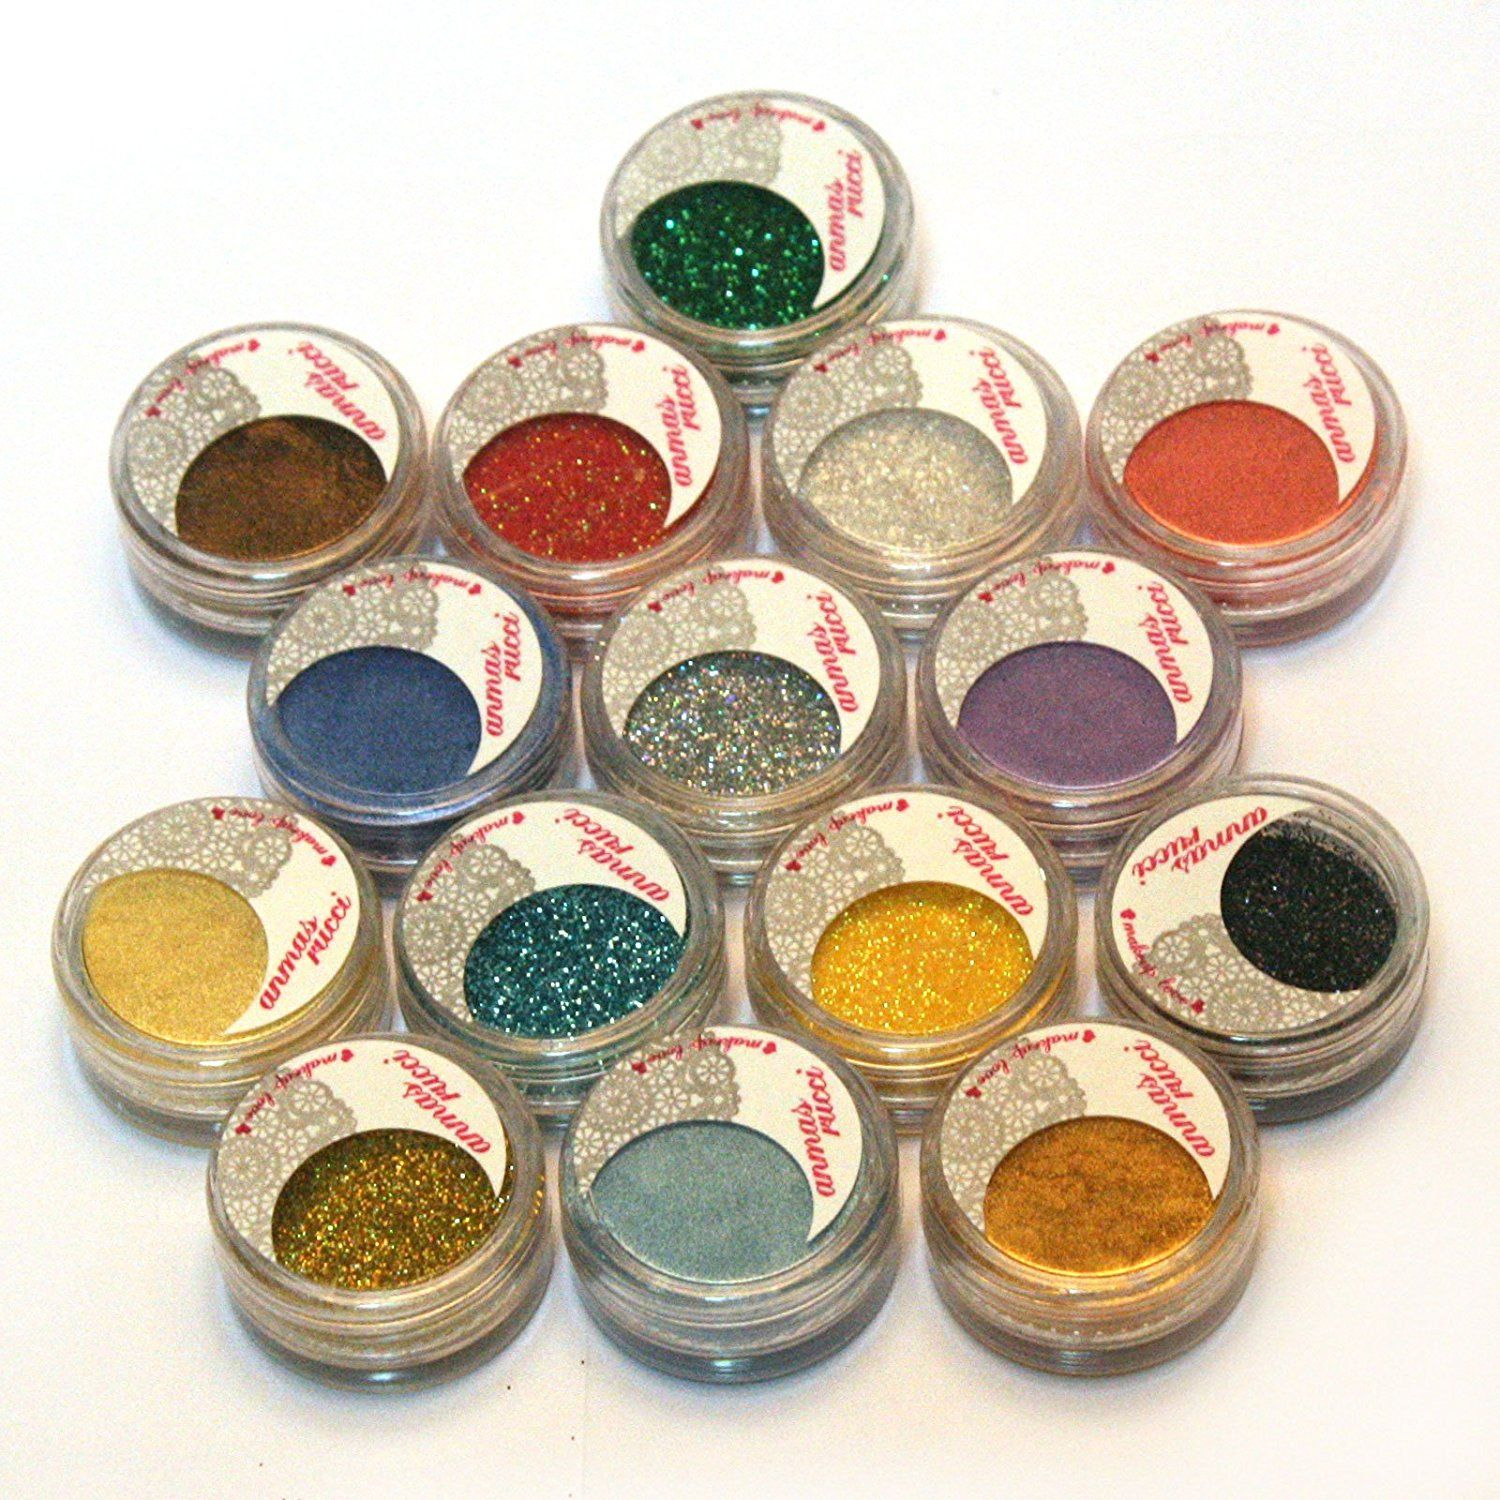 15 Warm Color Glitter Shimmer Pearl Loose Eyeshadow